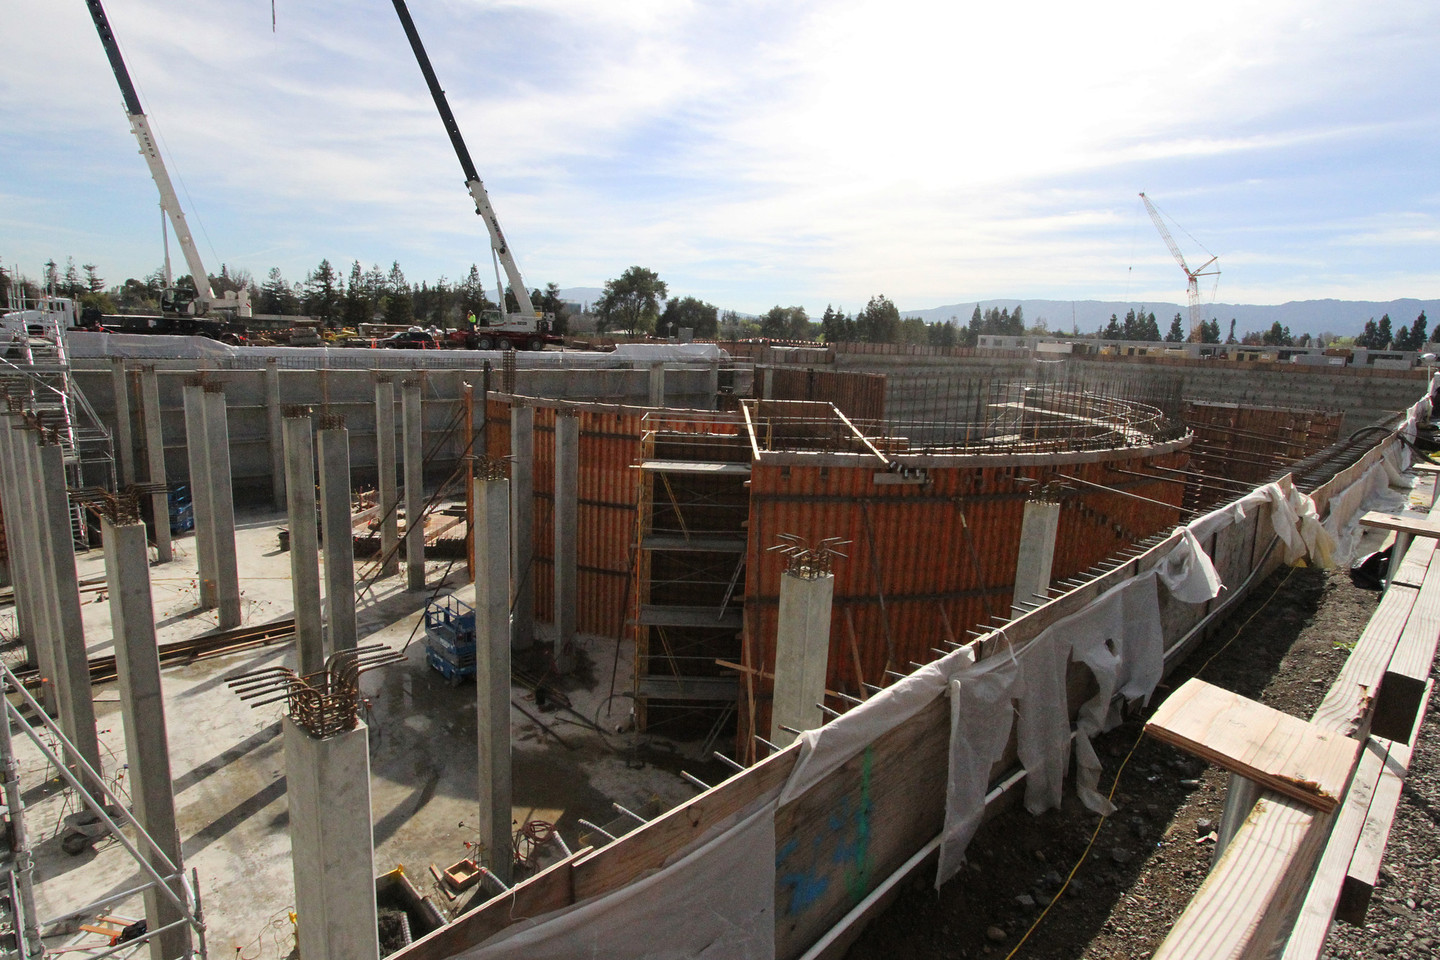 Adjacent to the circular office space, Apple is constructing an amphitheater. (Anya Schultz/KQED)